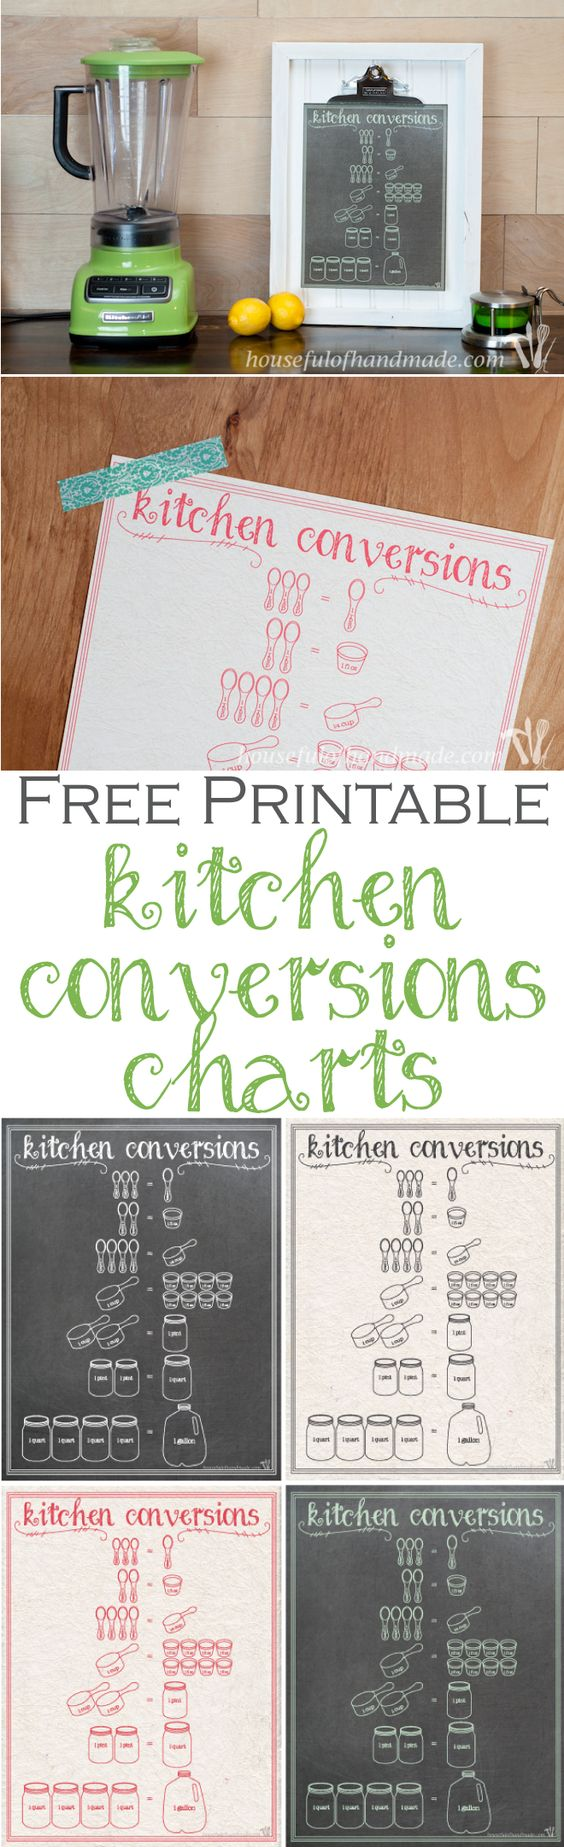 Free printable kitchen conversion chart kitchen conversion chart free printable kitchen conversion chart kitchen conversion chart free printable and chart nvjuhfo Images